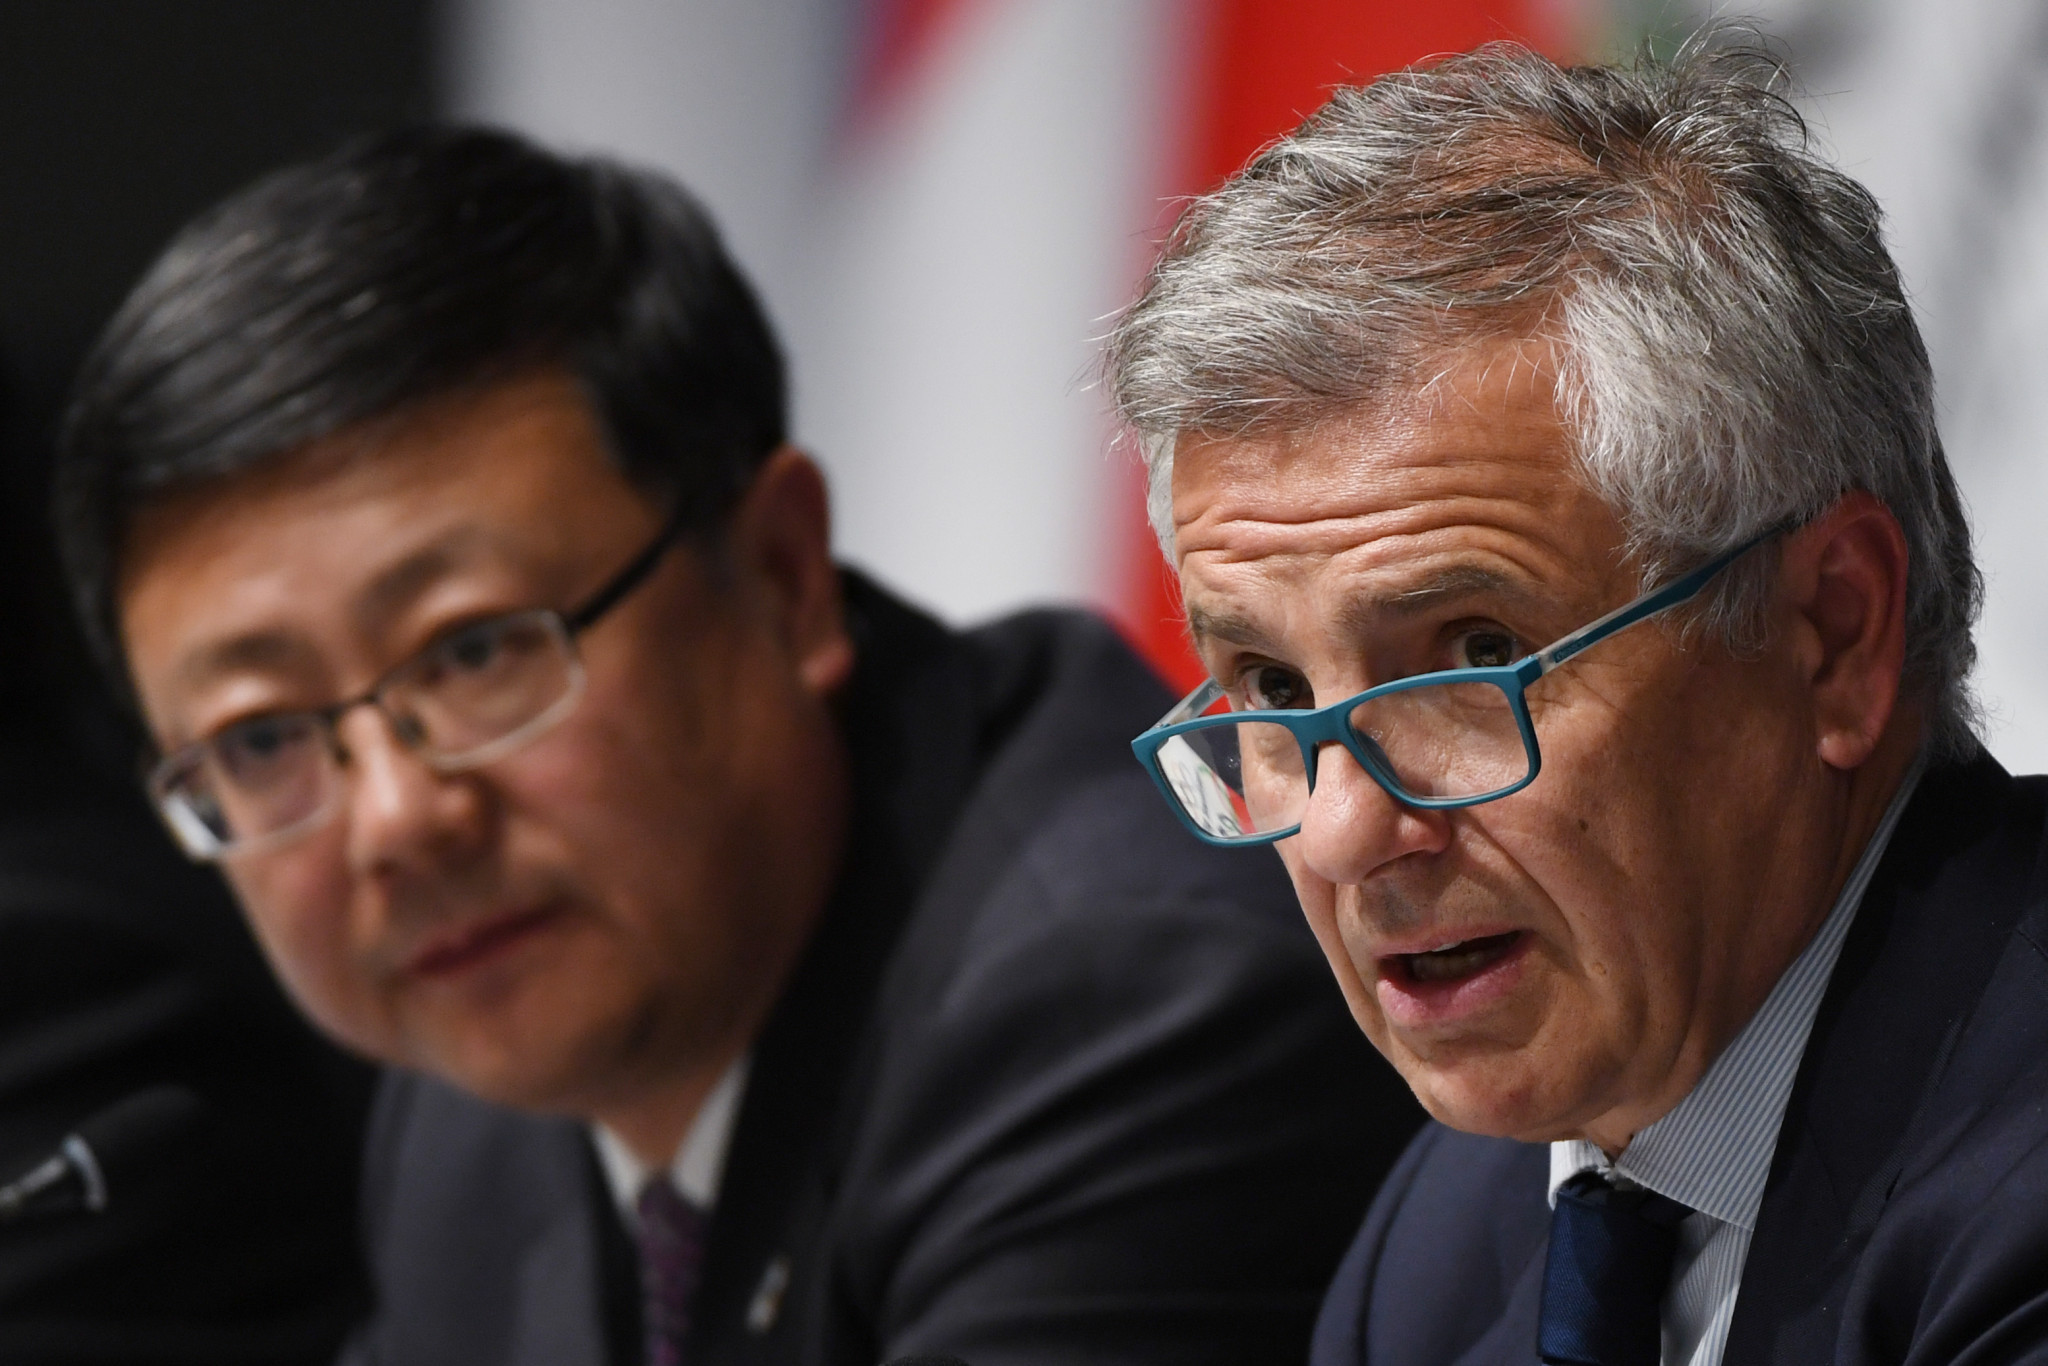 Beijing Mayor Chen Jining and IOC vice-president Juan Antonio Samaranch, the interim chairman of the IOC Coordination Commission for Beijing 2022, both spoke in a press conference following the conclusion of the debrief's two-day strategic learning phase ©Getty Images